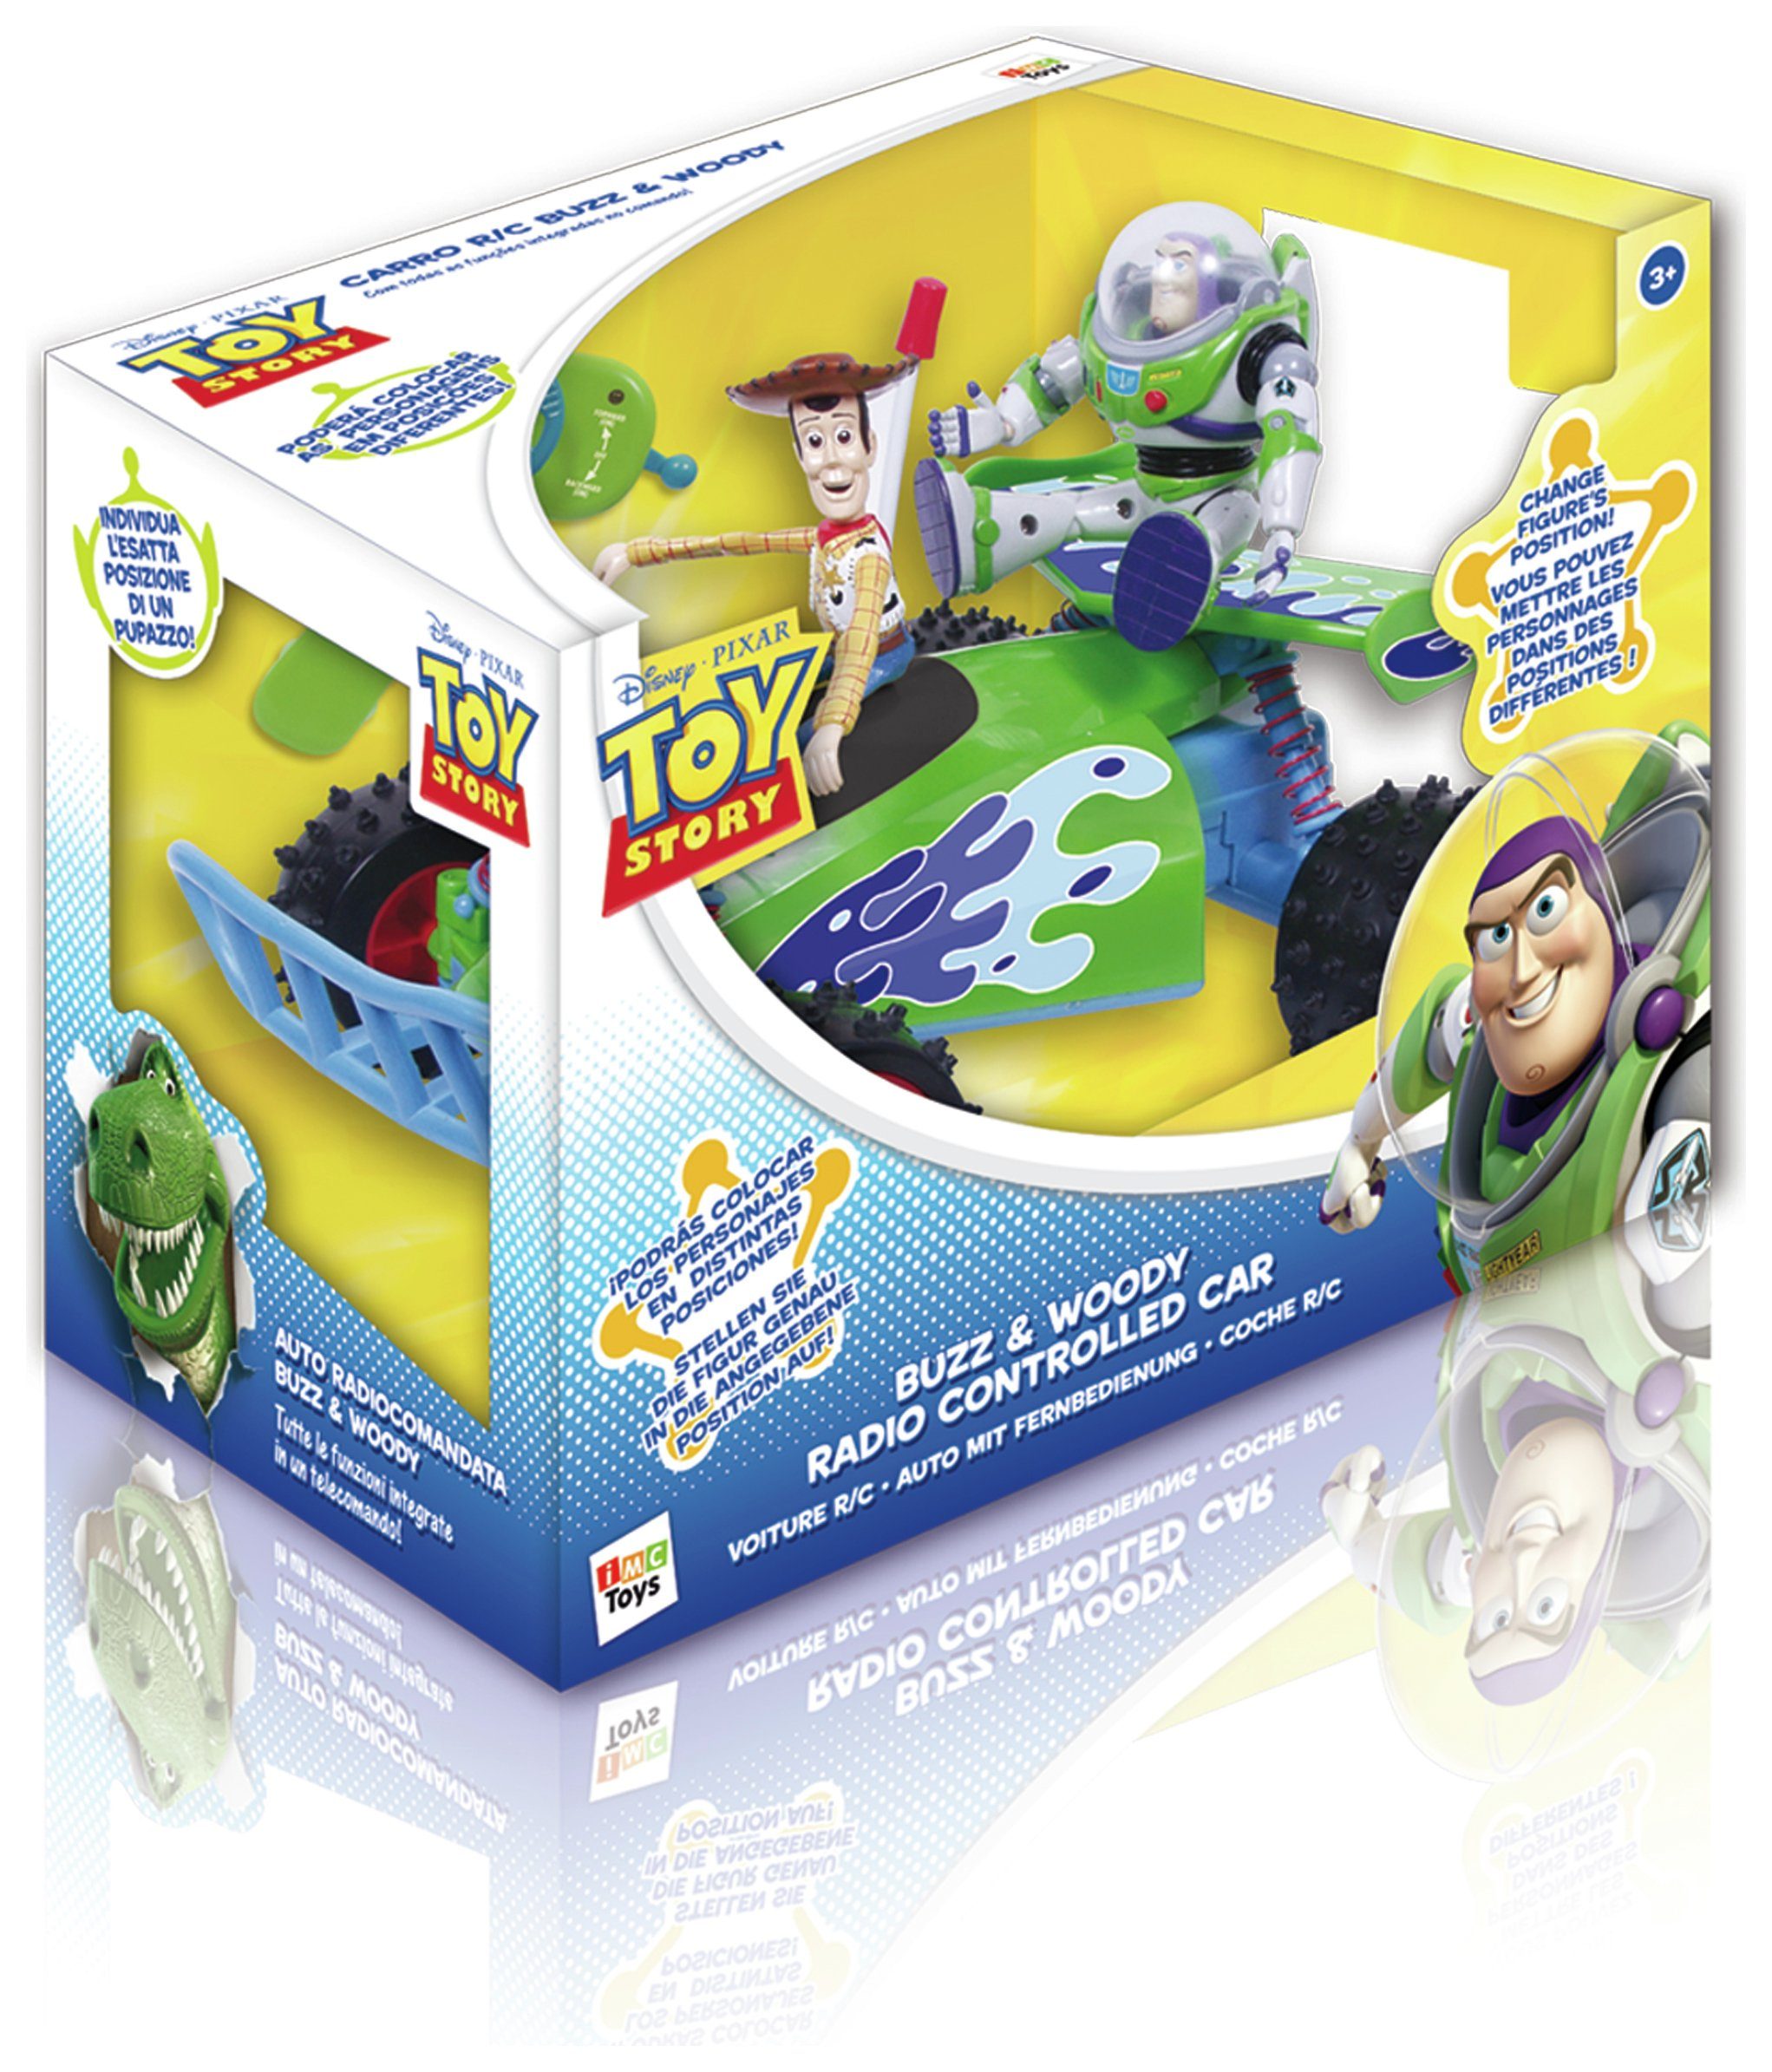 Toy Story Remote Control Car.